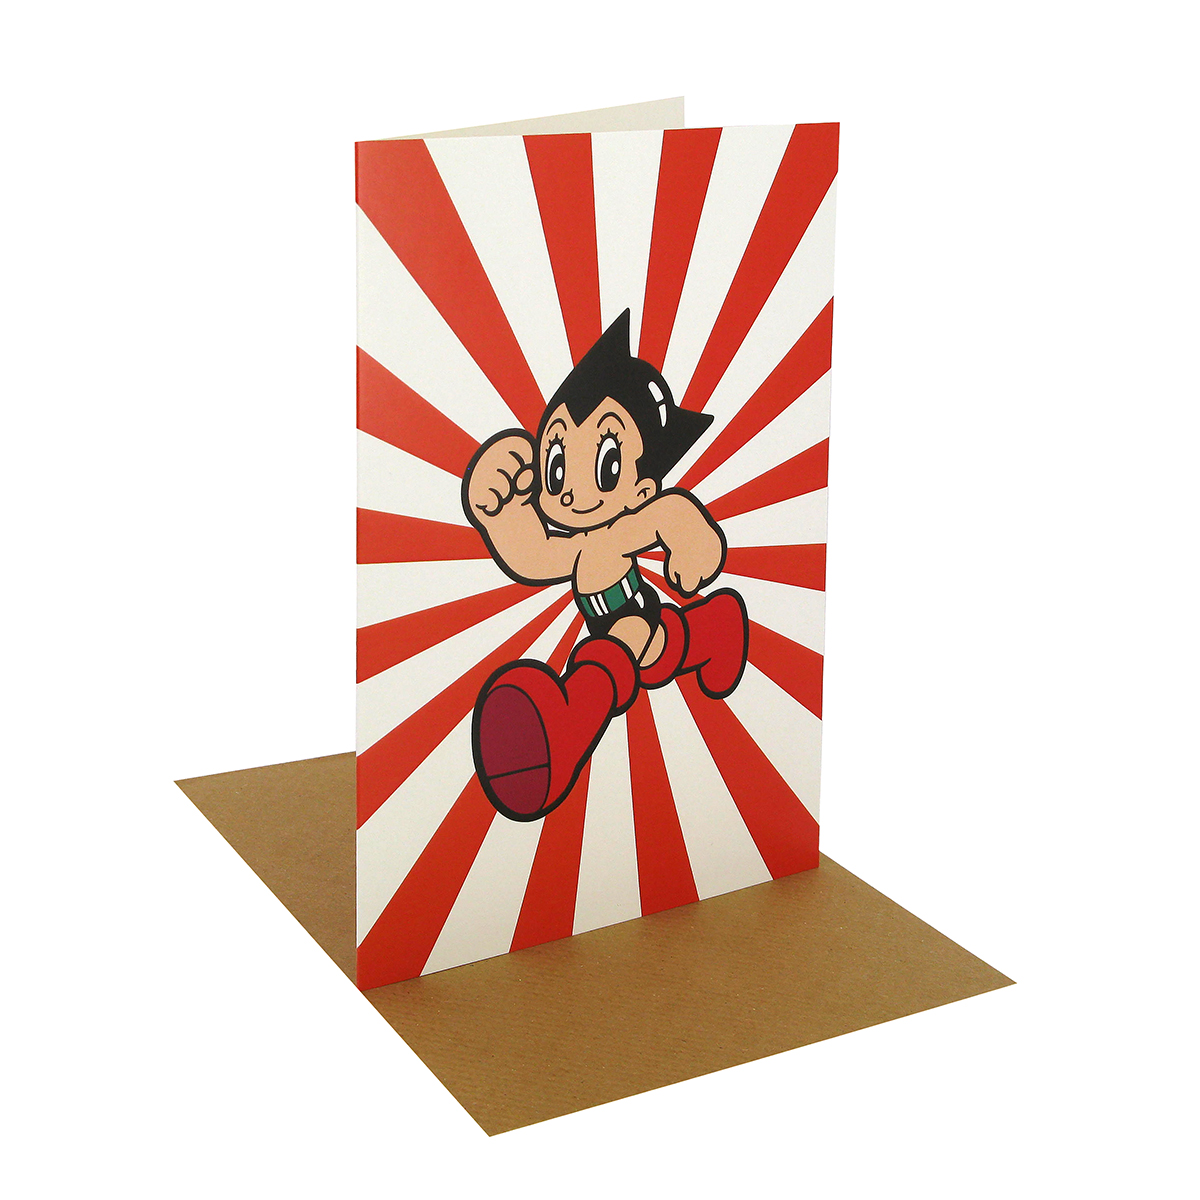 Astro boy greeting card (red)